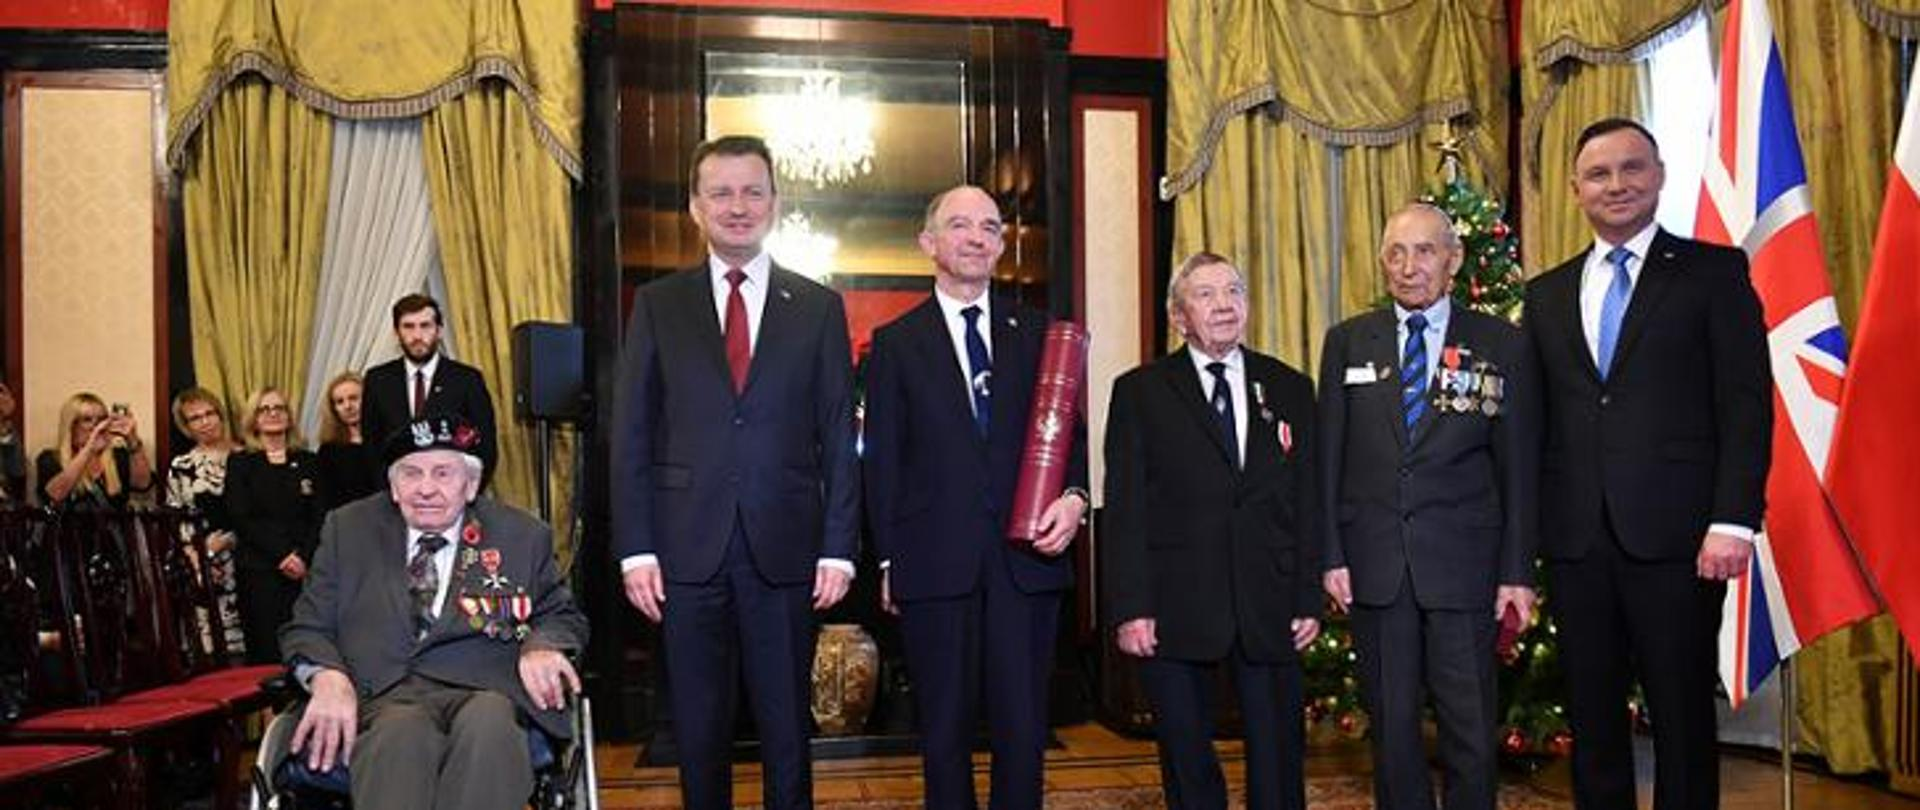 President Andrzej Duda and Minister of National Defence Mariusz Błaszczak at a meeting with veterans of World War II, which took place on December 3, 2019 at the Polish Embassy in London.